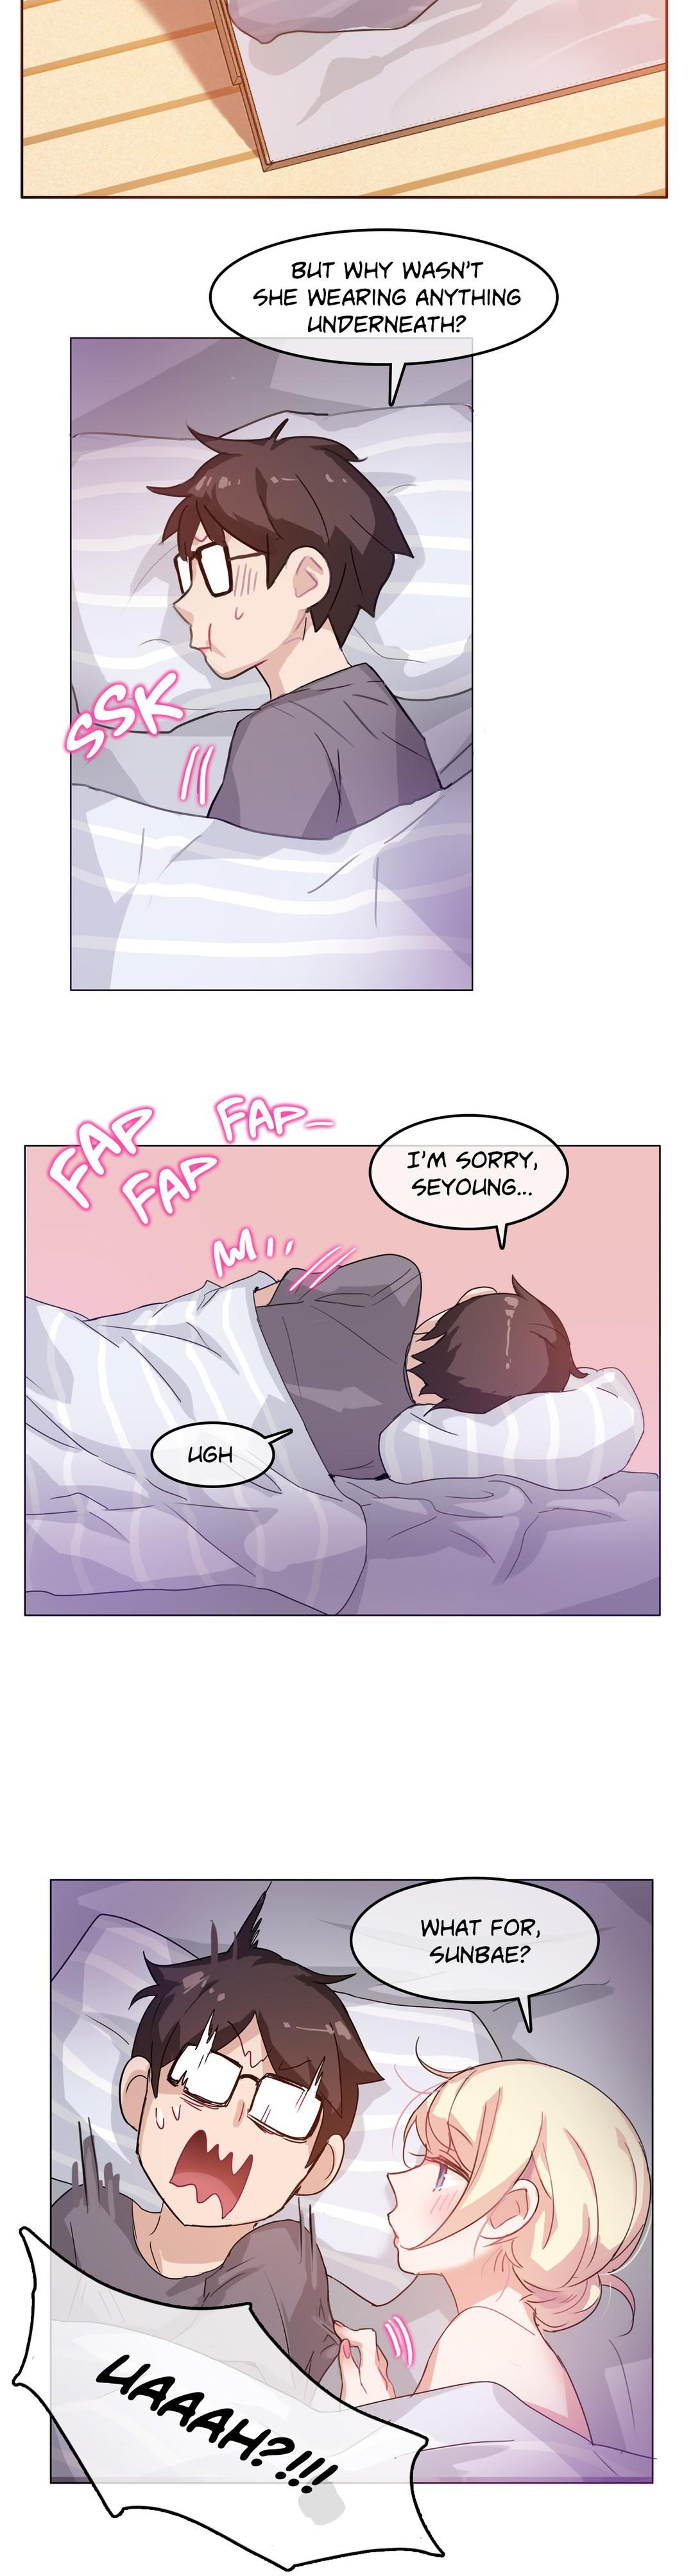 A Pervert's Daily Life Ch. 1-34 74